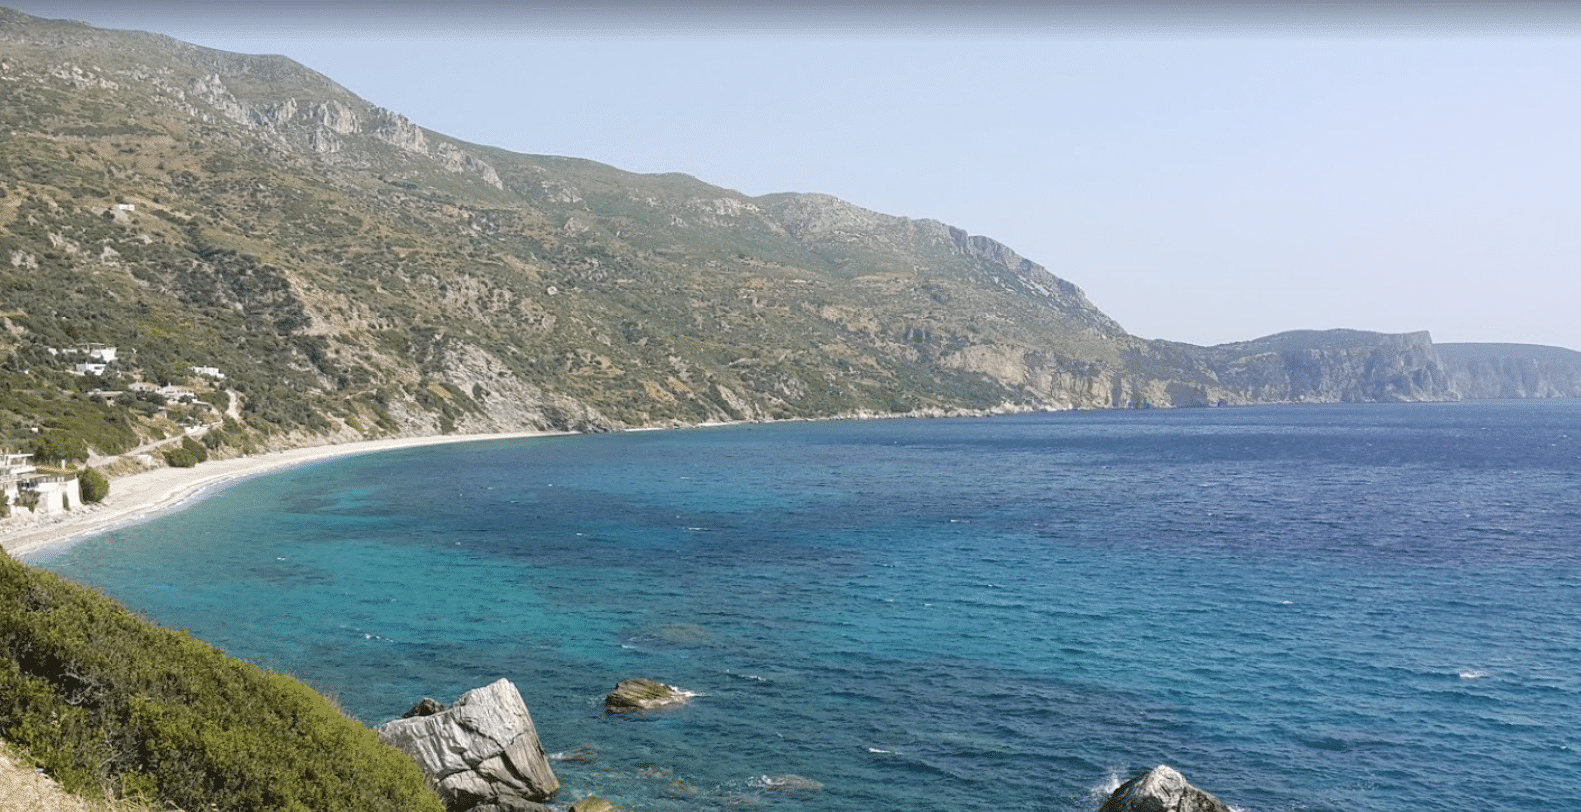 Evia: Nearby and beautiful beaches for one-day